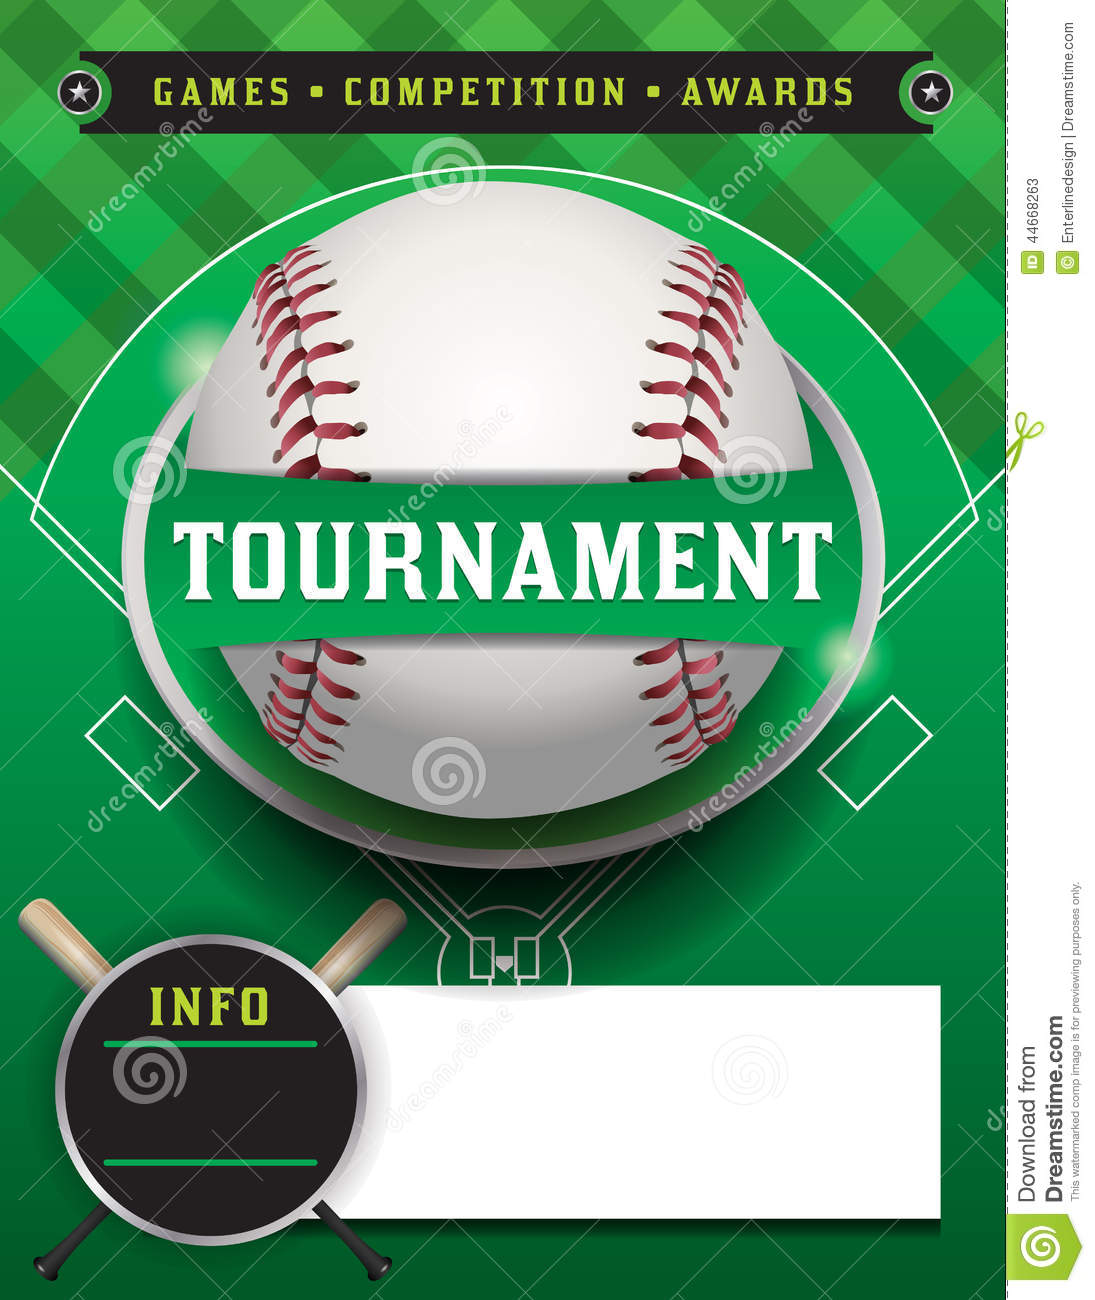 thumbsdreamstimecomzbaseball tournament templa